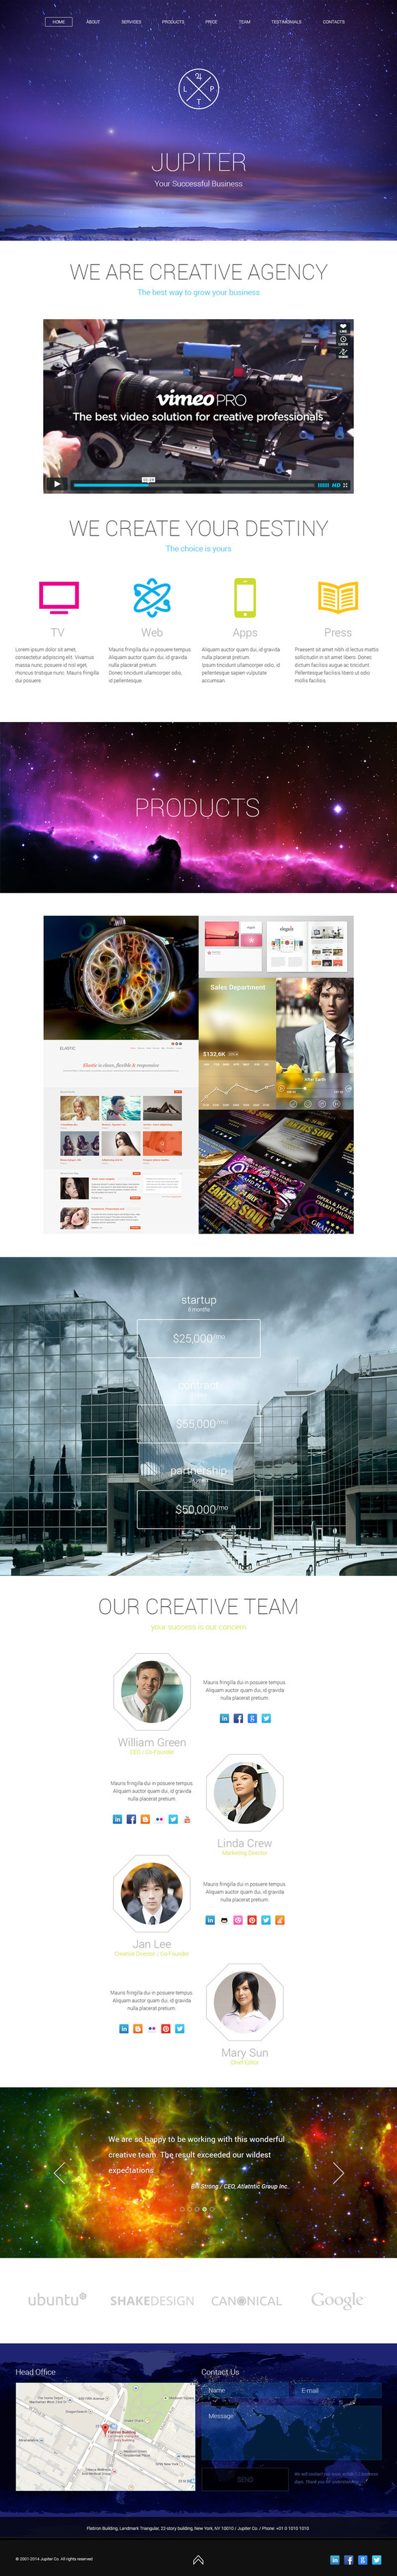 Jupiter Creative Agency PSD Template